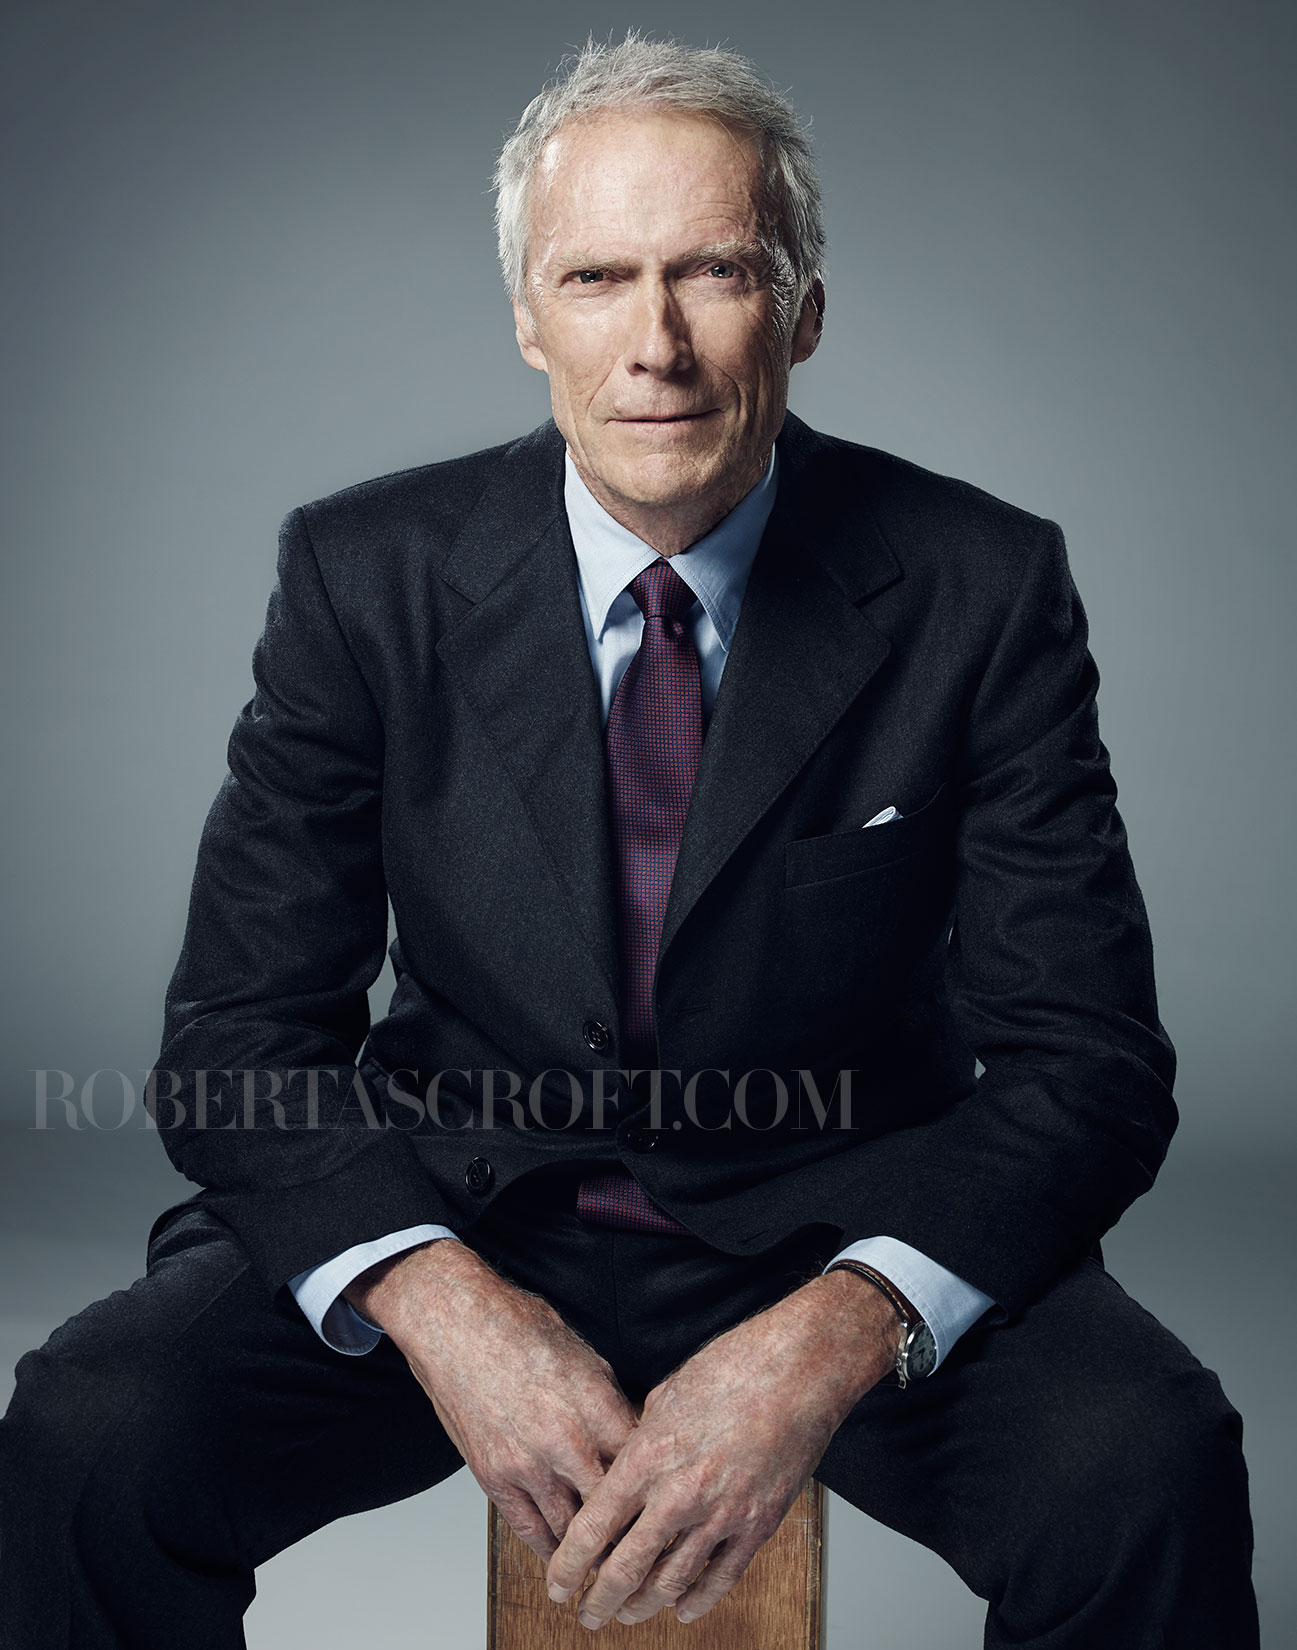 Clint-Eastwood-by-Robert-Ascroft